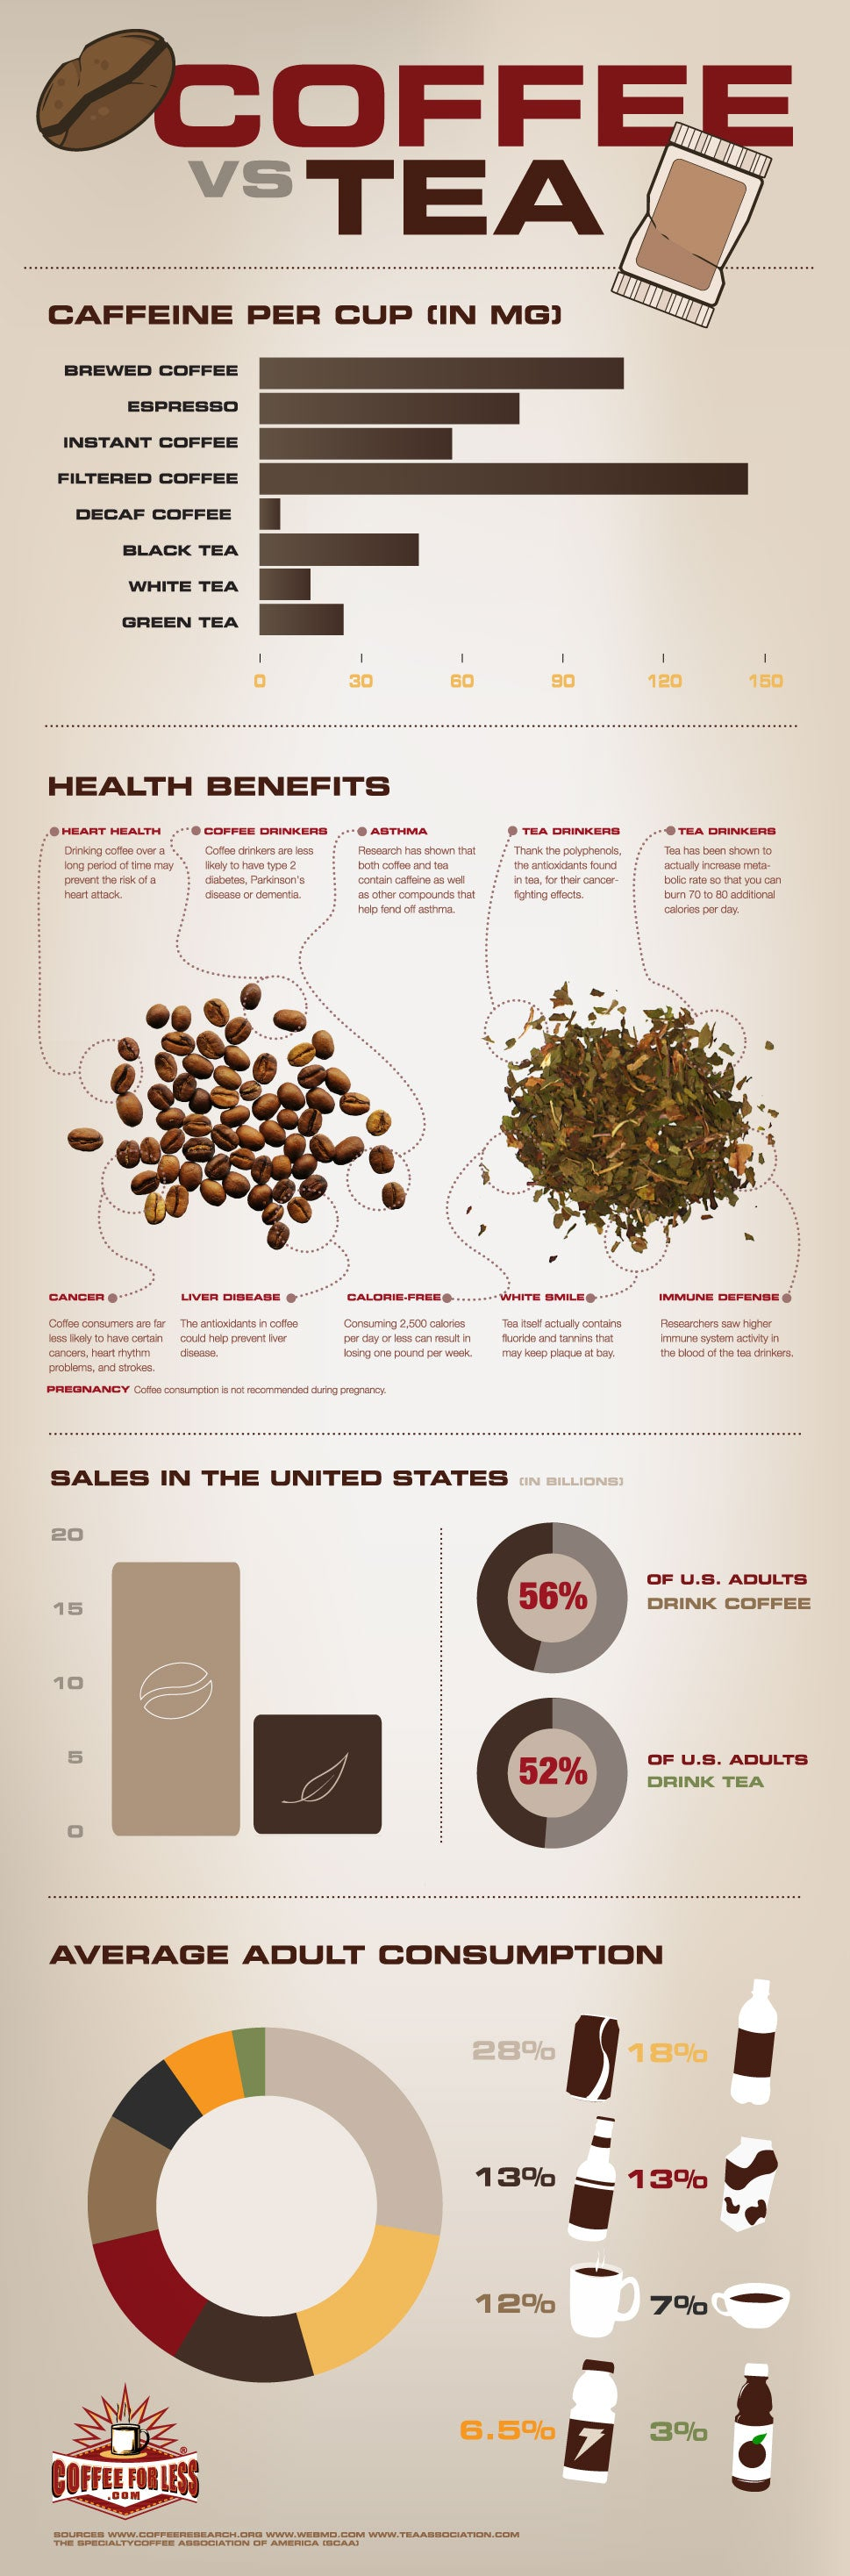 Coffee vs. Tea Statistics